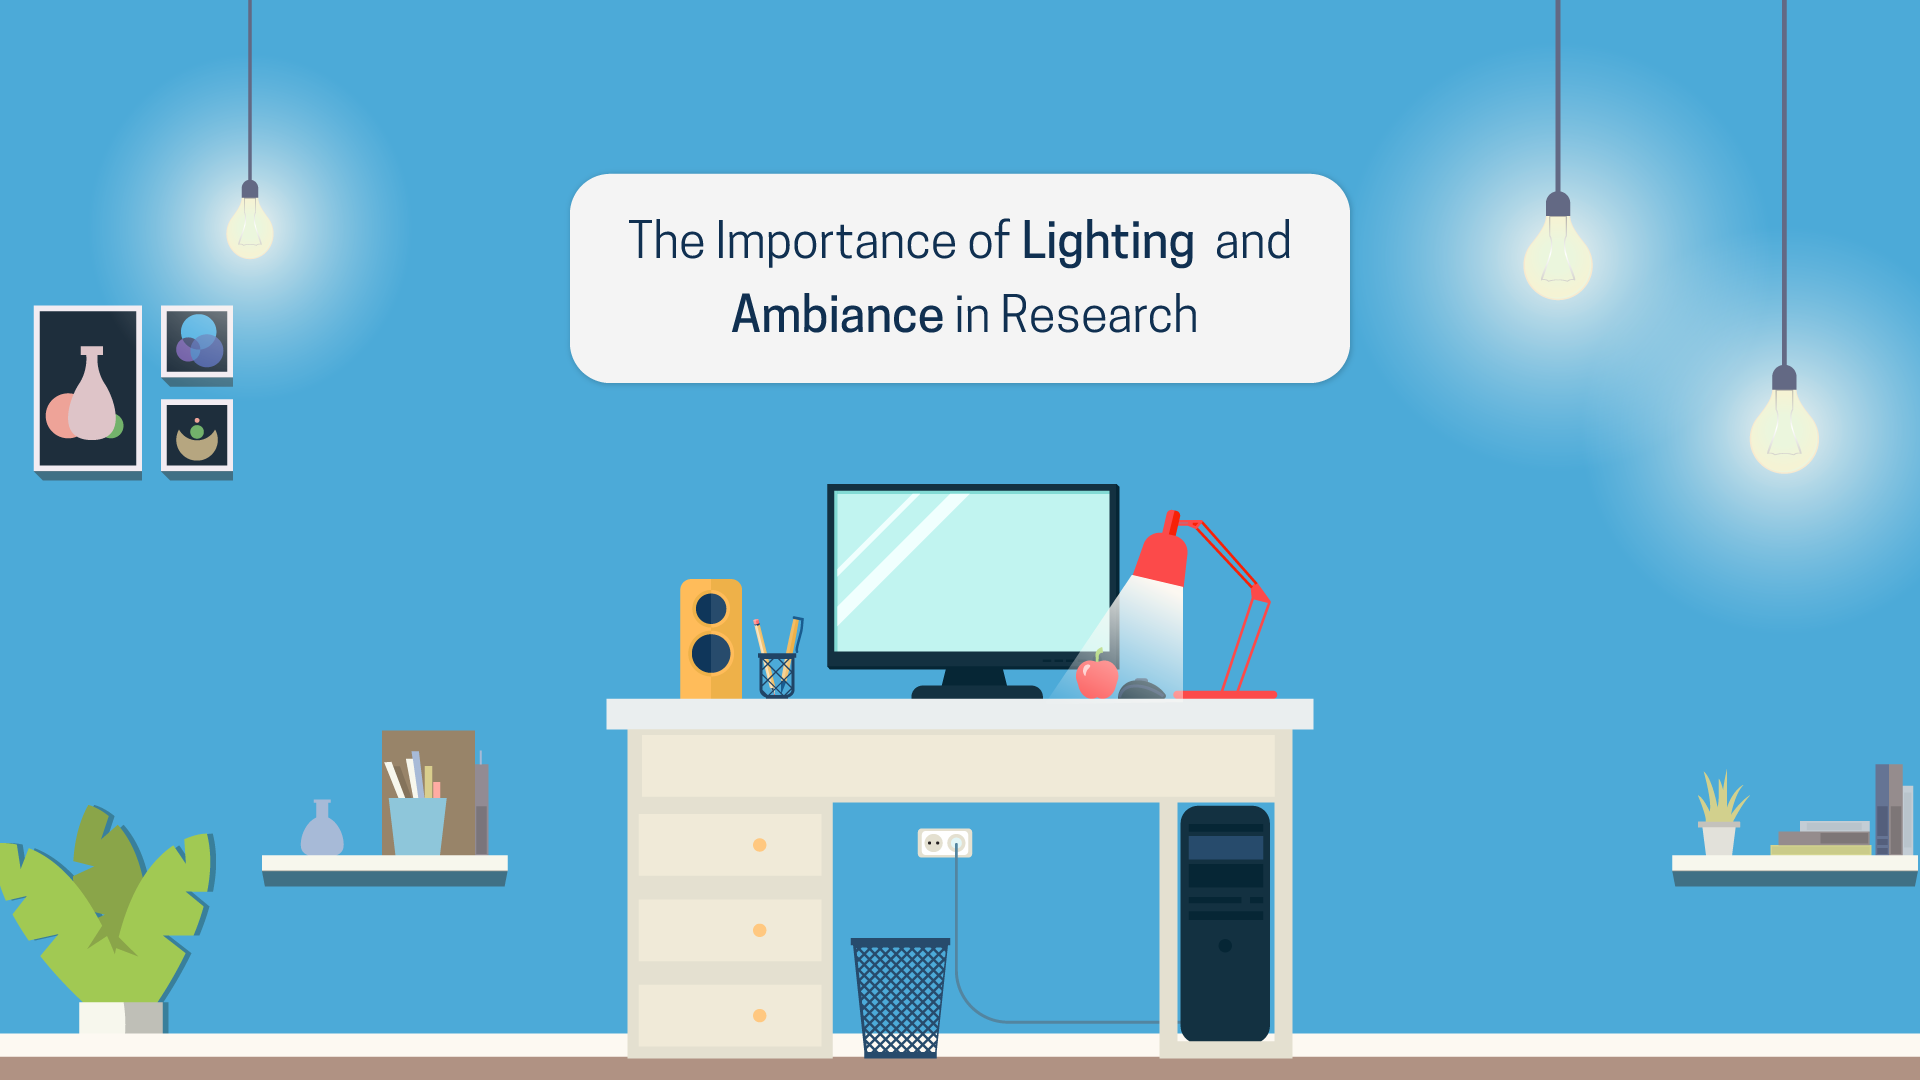 The Importance of Lighting and Ambiance in Research